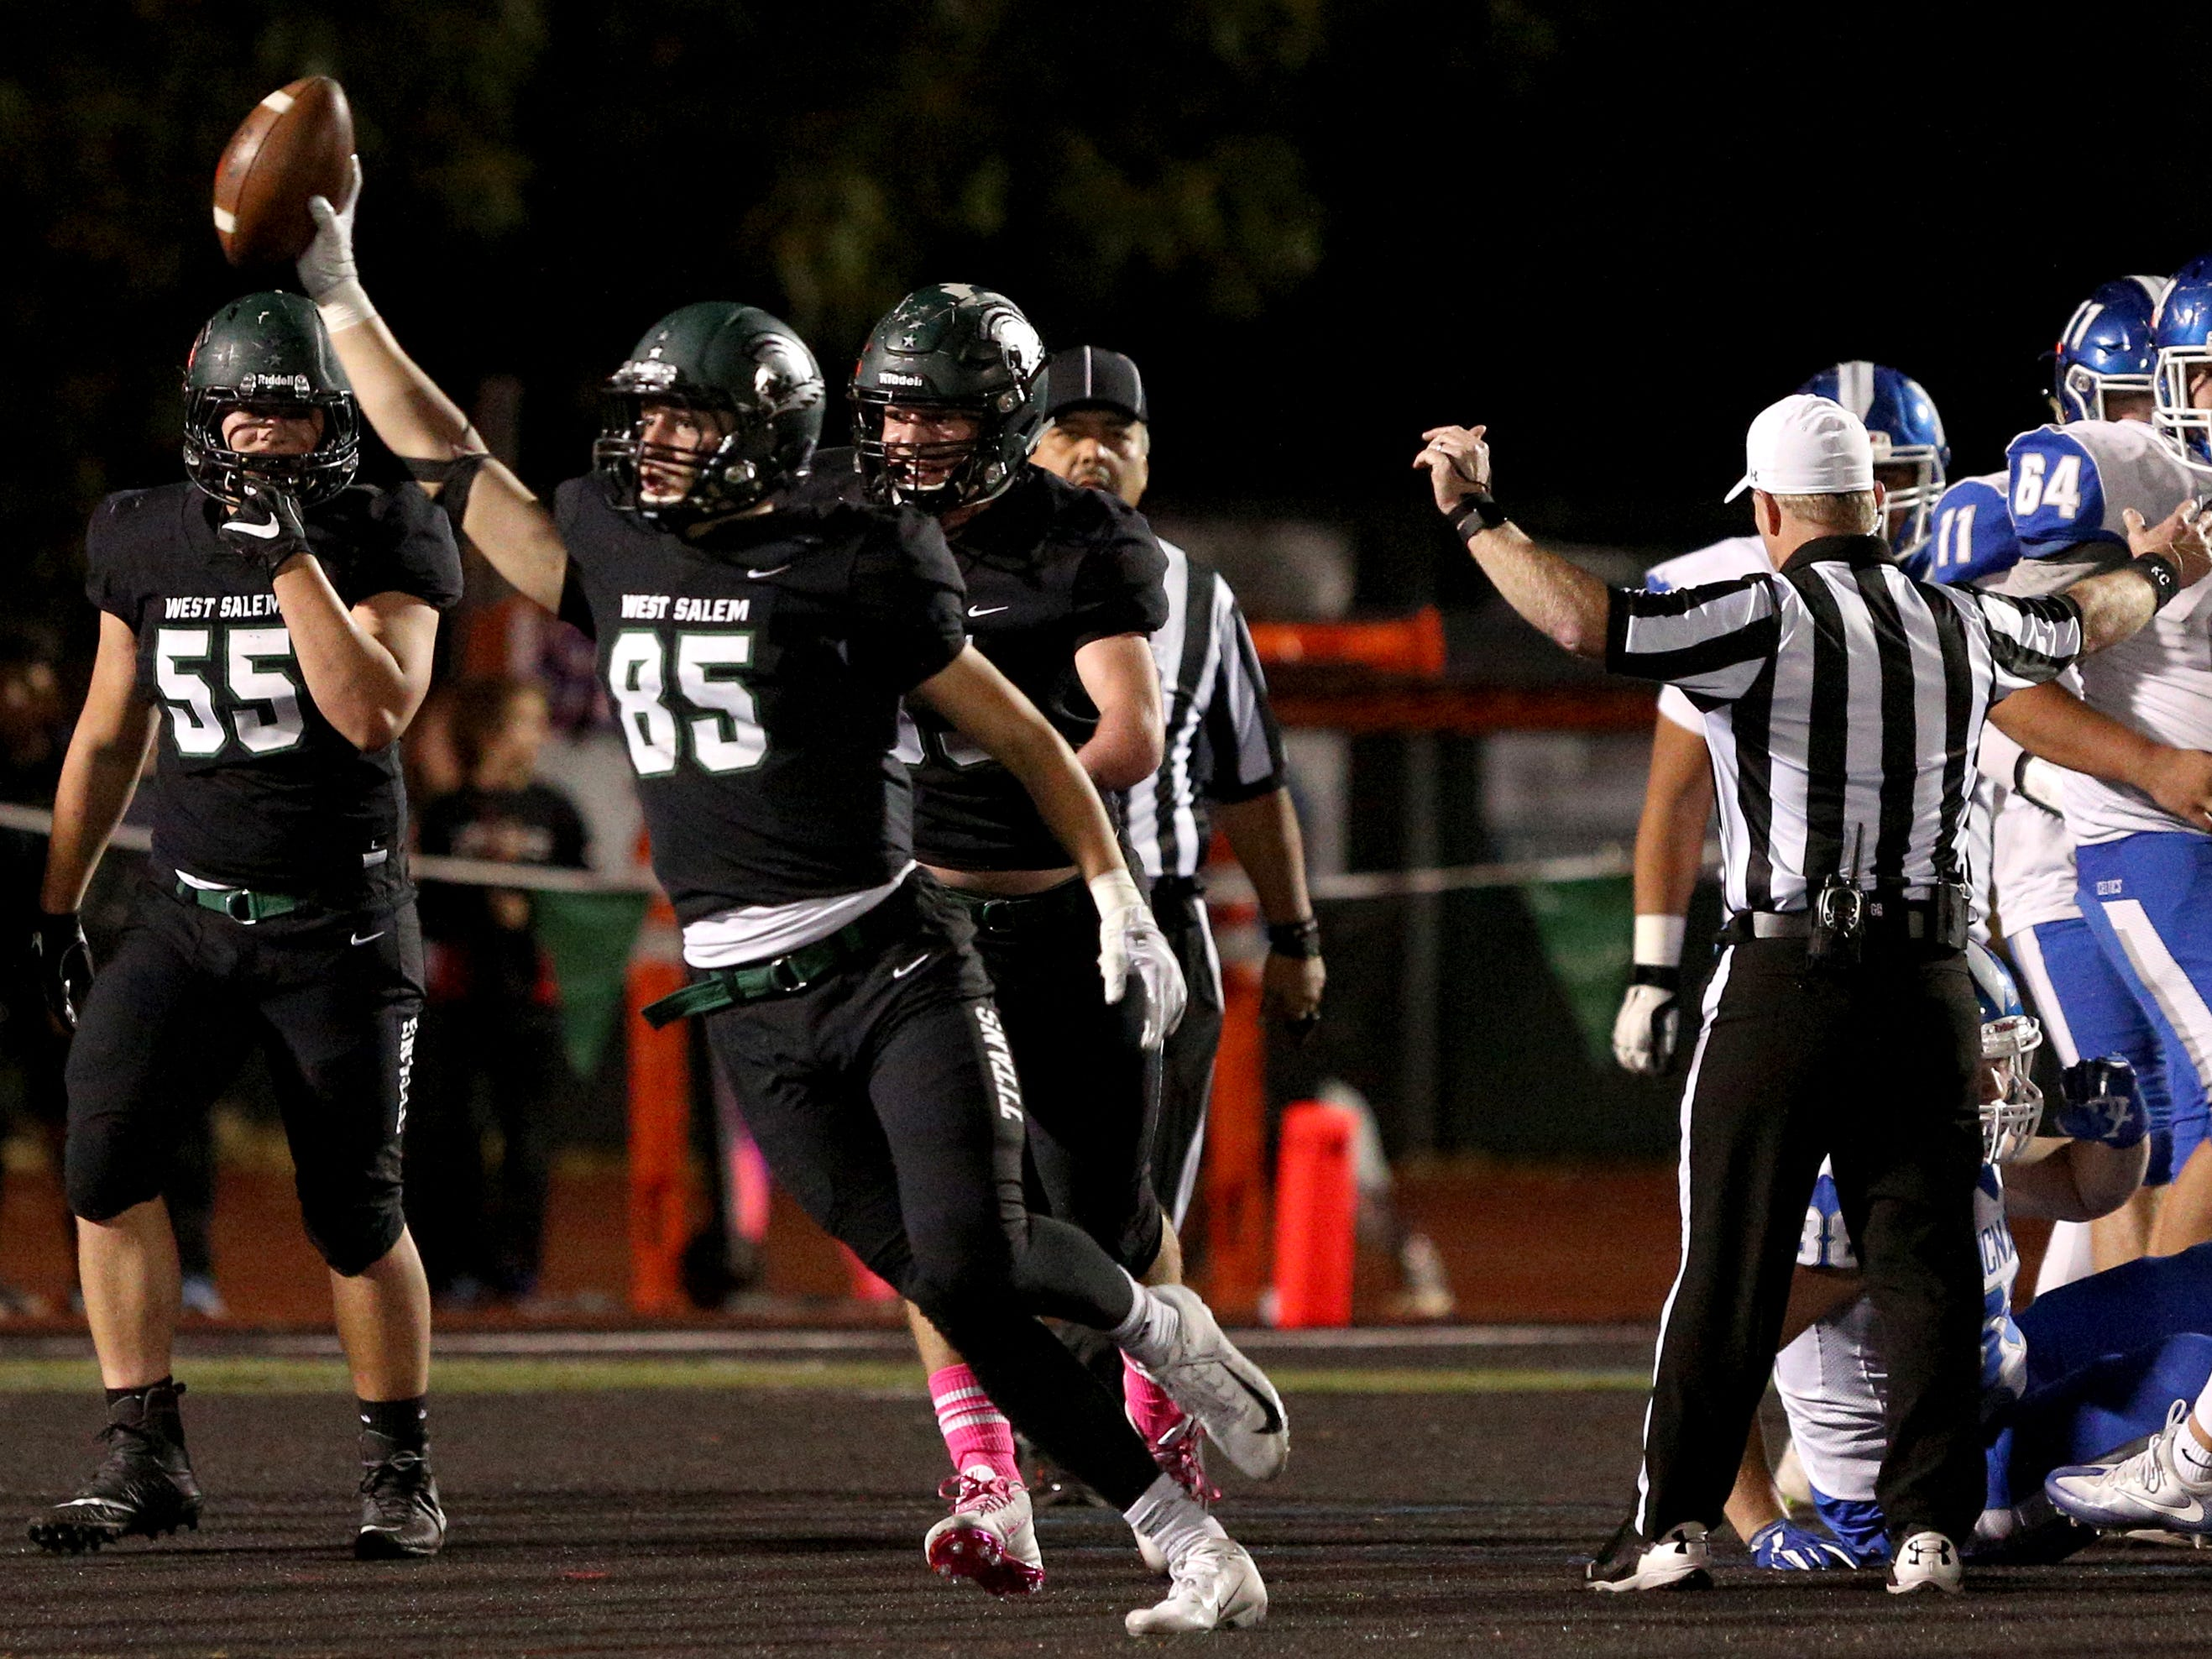 West Salem's Anthony Pugh (85) celebrates after recovering the ball during the first half of the McNary vs. West Salem football game at West Salem High School on Friday, Oct. 19.